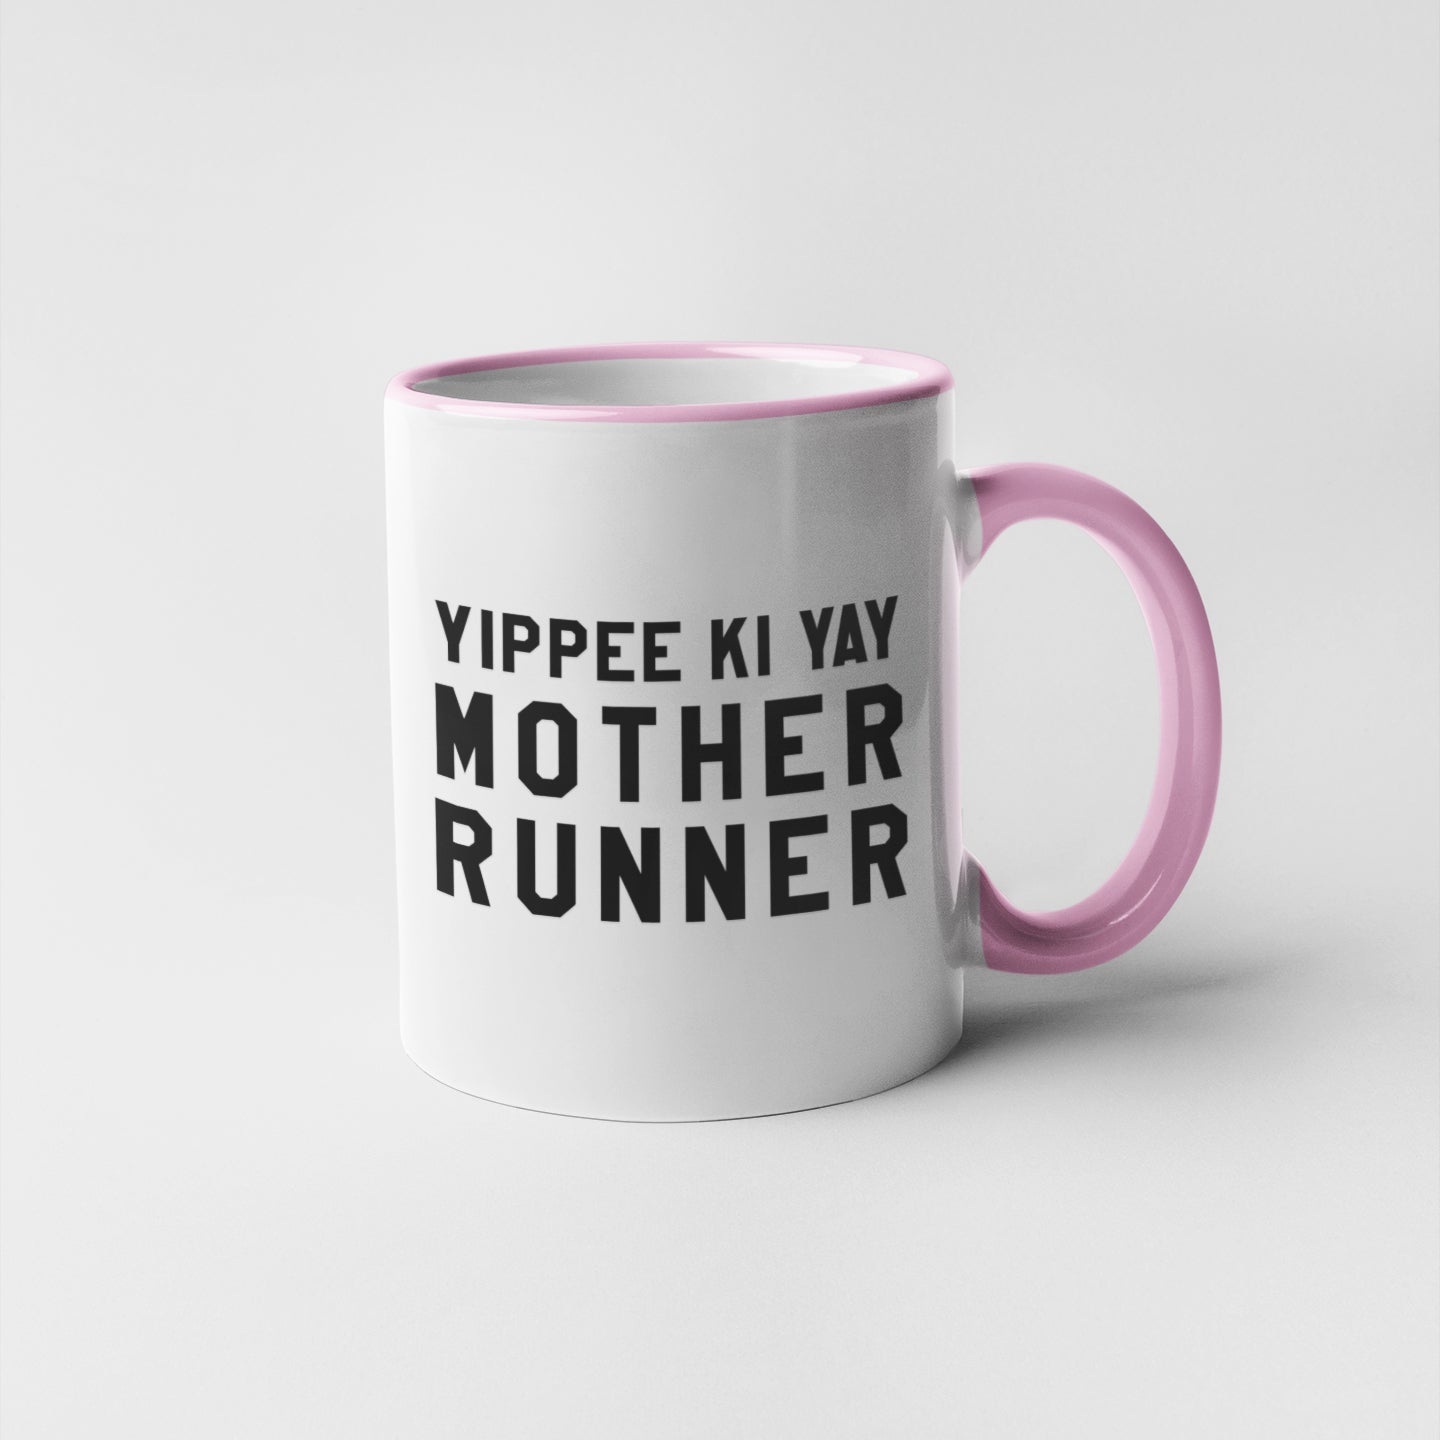 Yippee Ki Yay Mother Runner Mug